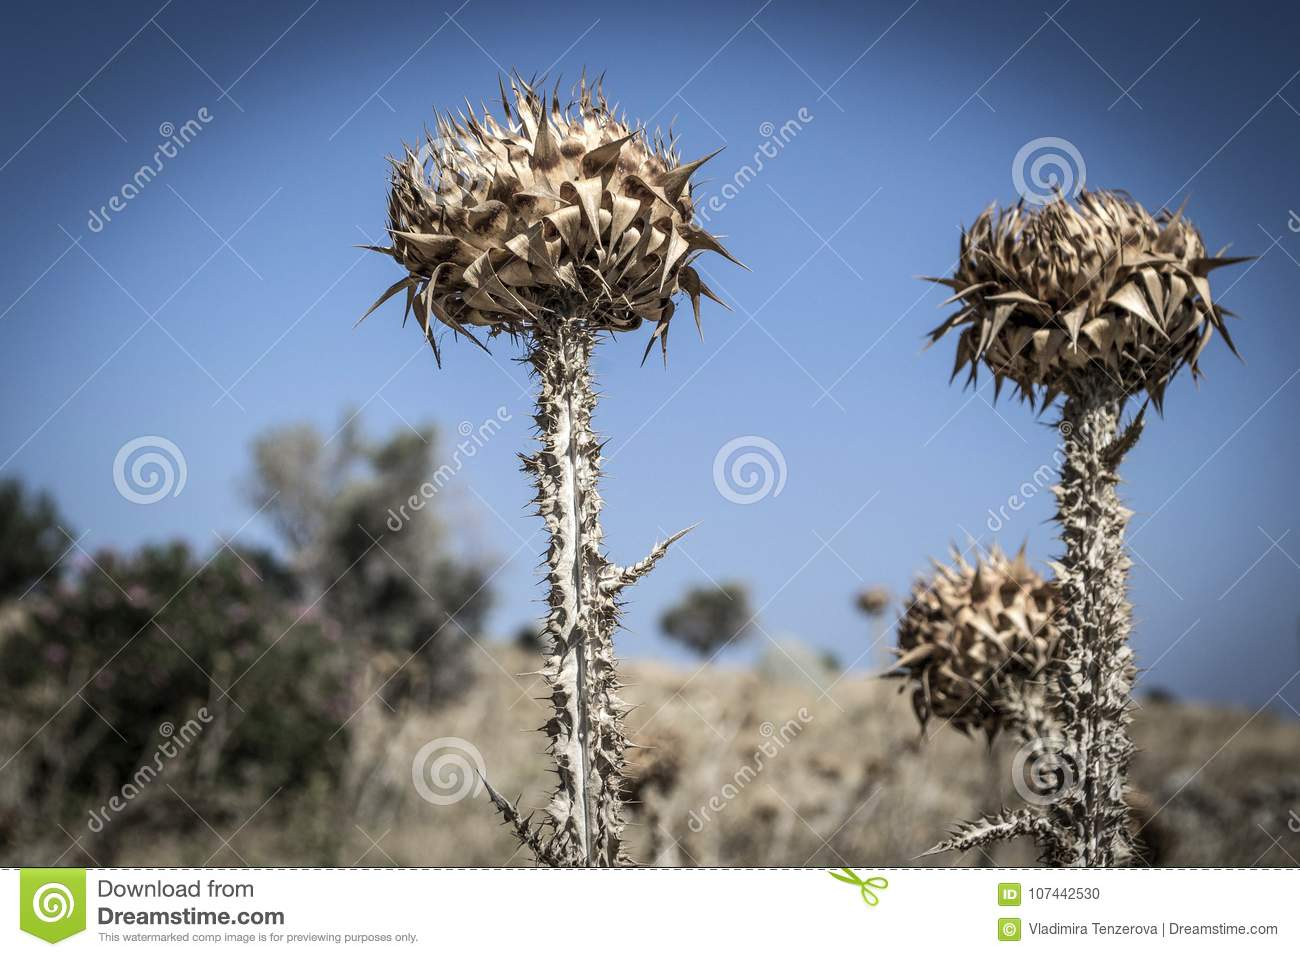 Dry thistles against the blue sky